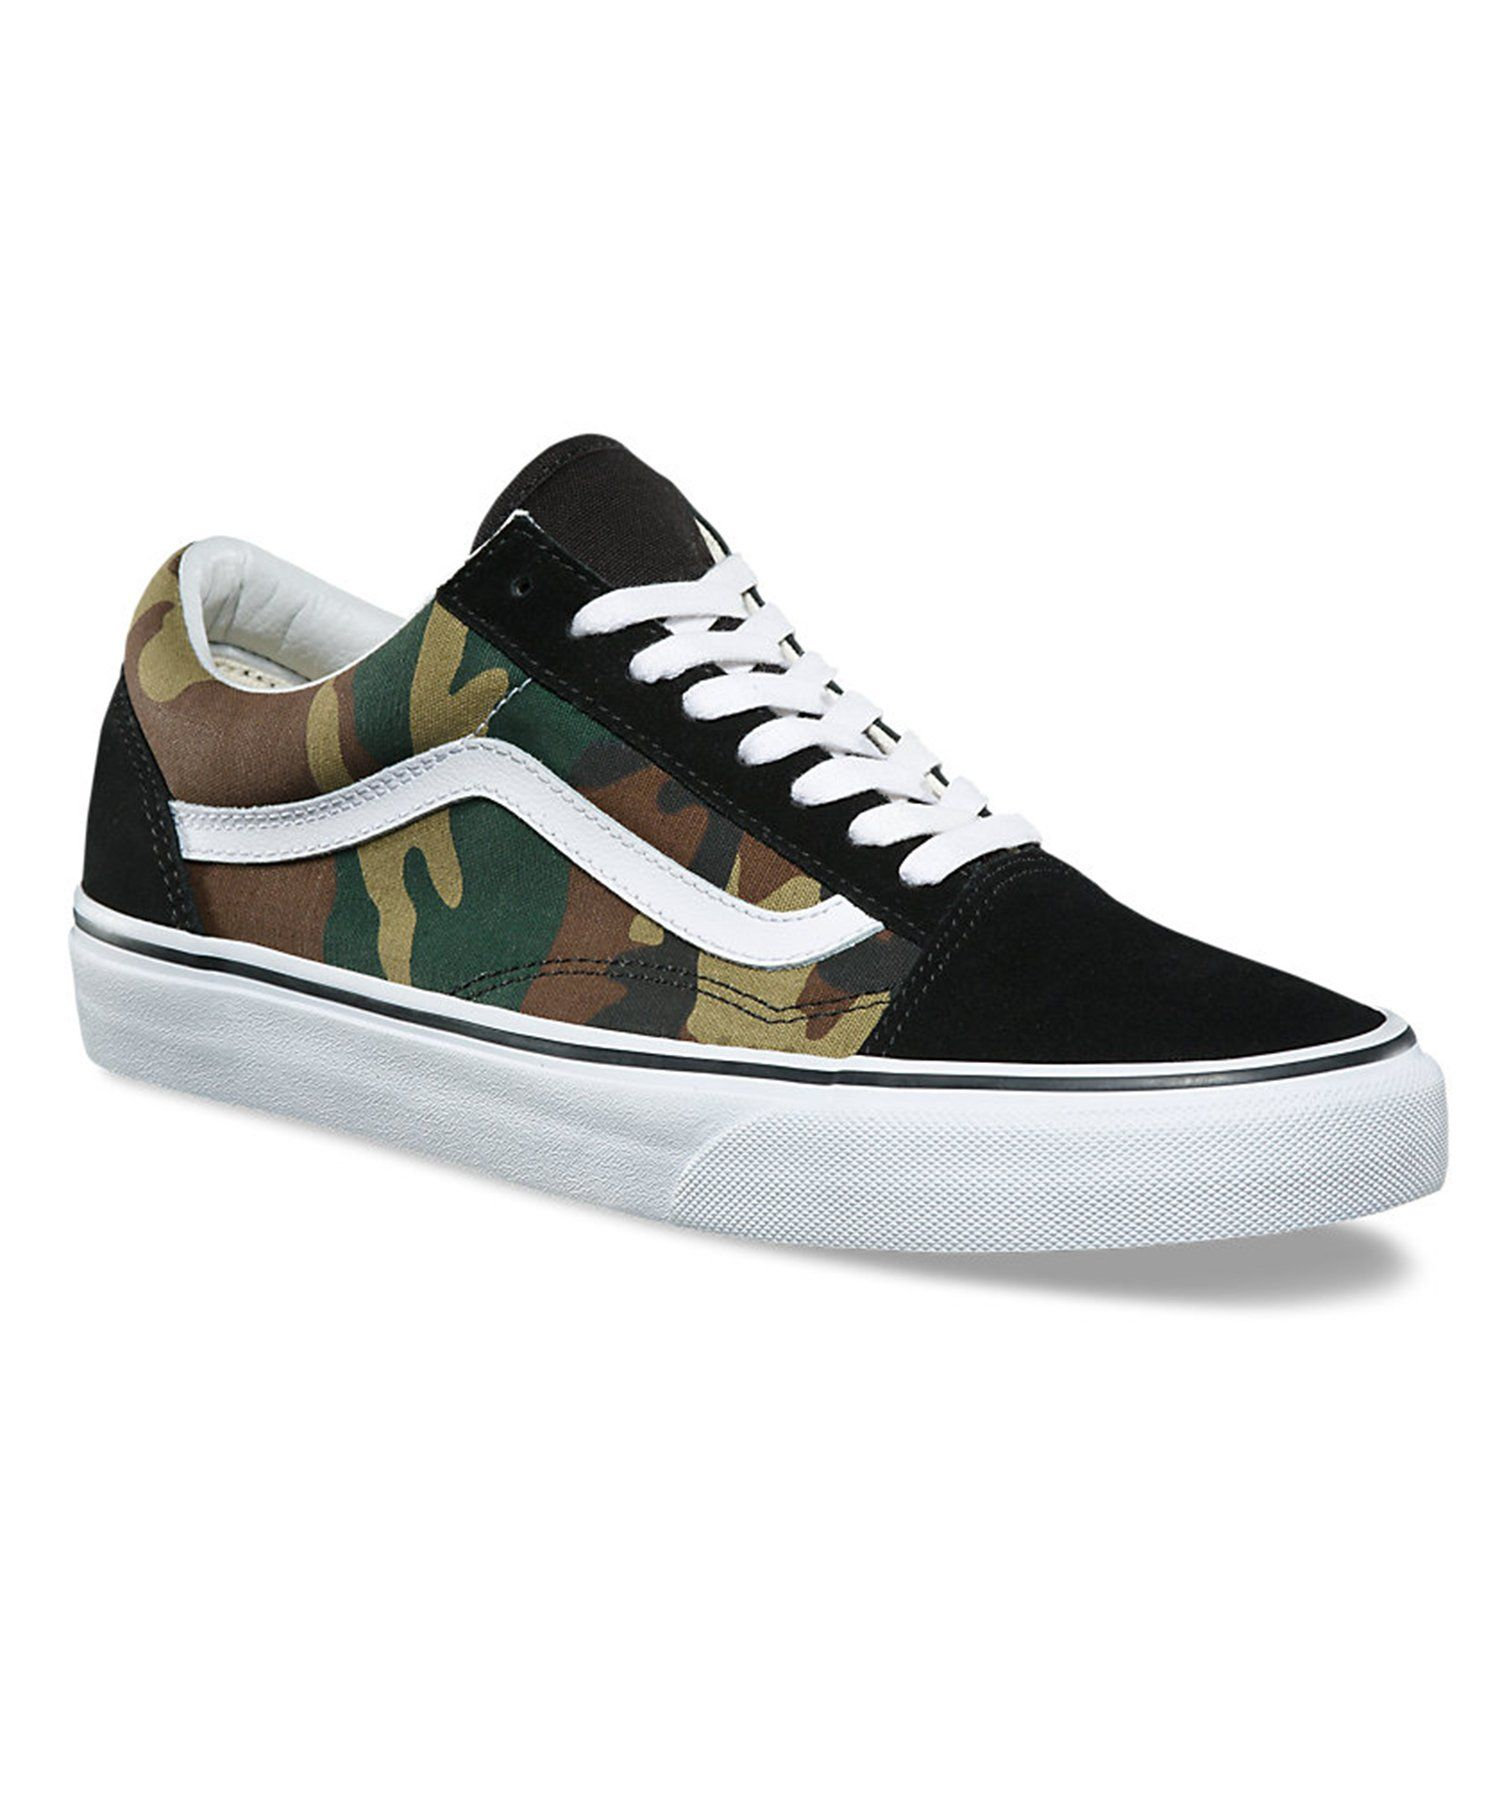 61085063d0 The Woodland Camo Old Skool